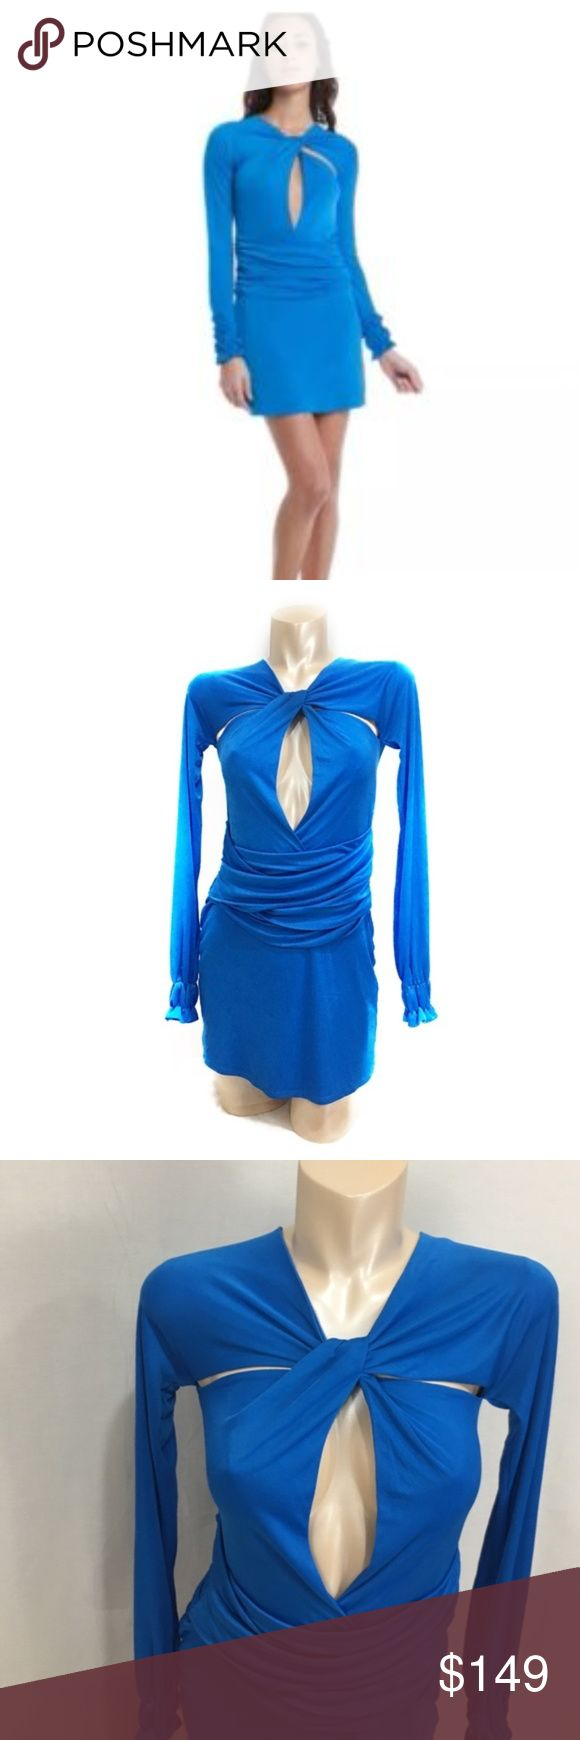 Rock&Republic keyhole plunge blue mini dress sz 2 Rock&Republic keyhole plunge blue mini dress sz 2.  Beautiful blue color  Sexy front cutouts and plunge keyhole make this dress a standout piece. Higher neckline and long sleeves to make it just the right amount of skin for a mini. New with tags. Size 2. Measurements are approx and in inches B-13+ due to keyhole w-12 h-17 length-32 sleeve-29 (moderate stretch)  Materials in pics  Original Retail price $374 New with tags  B309 Rock & Republic…